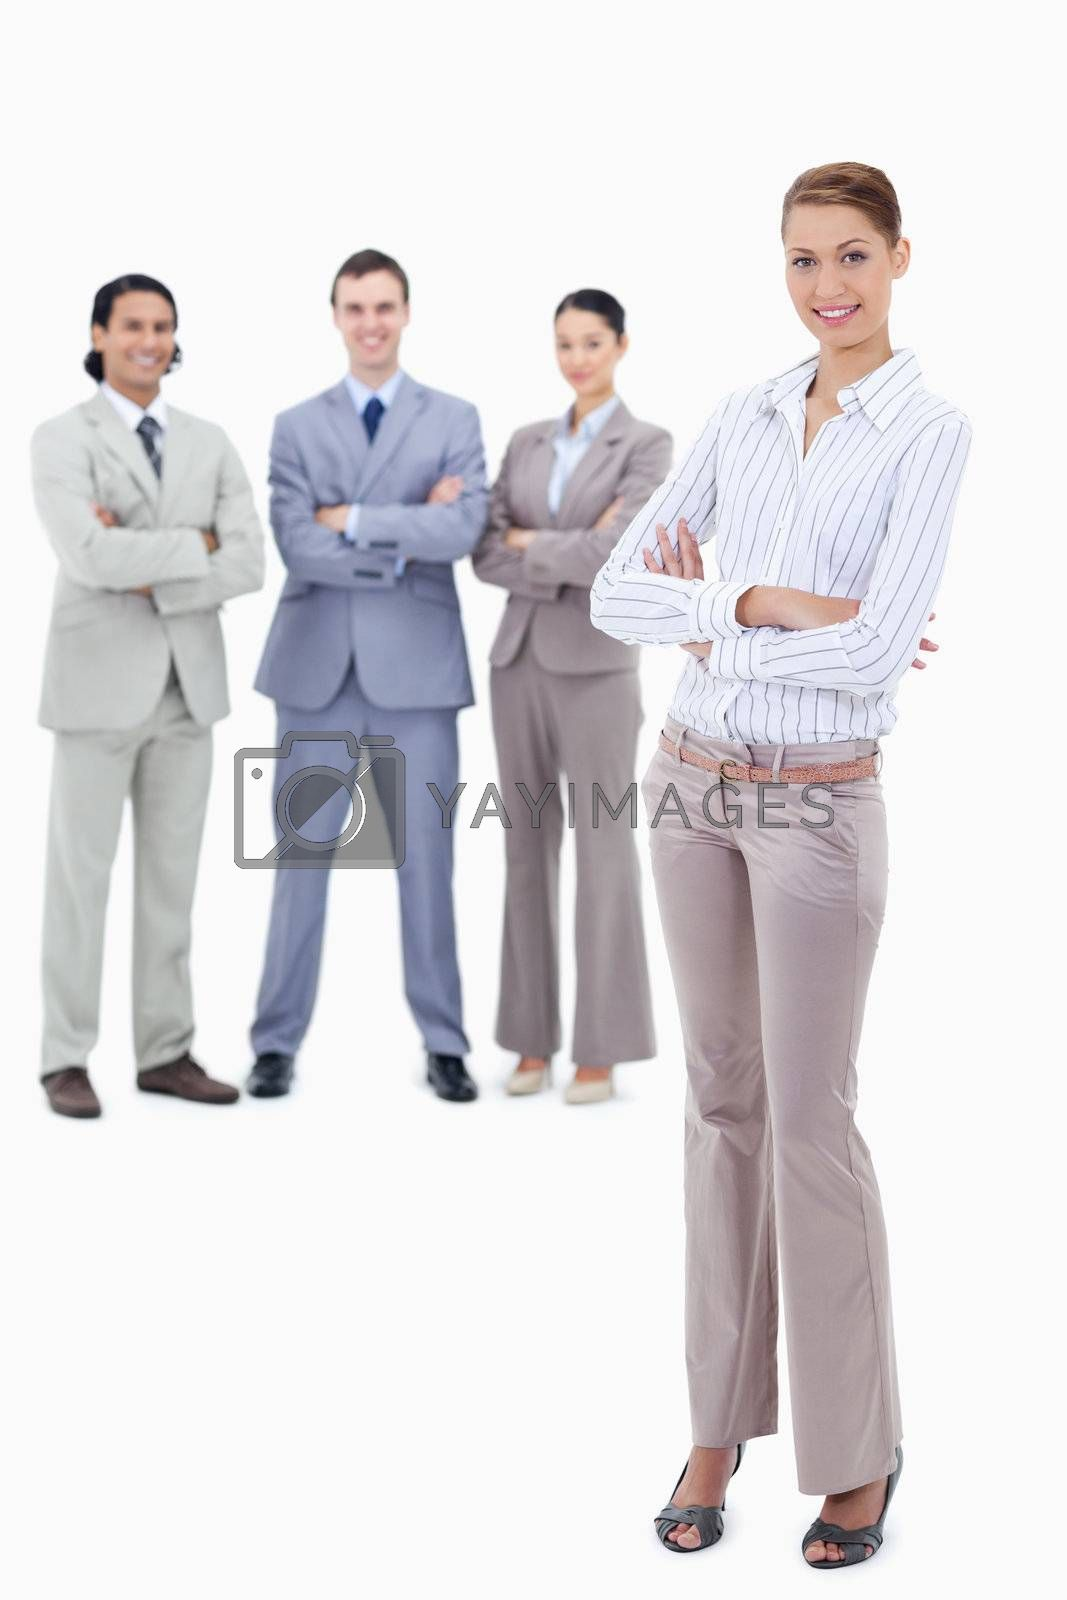 Secretary smiling and crossing her arms with happy business people behind her against white background